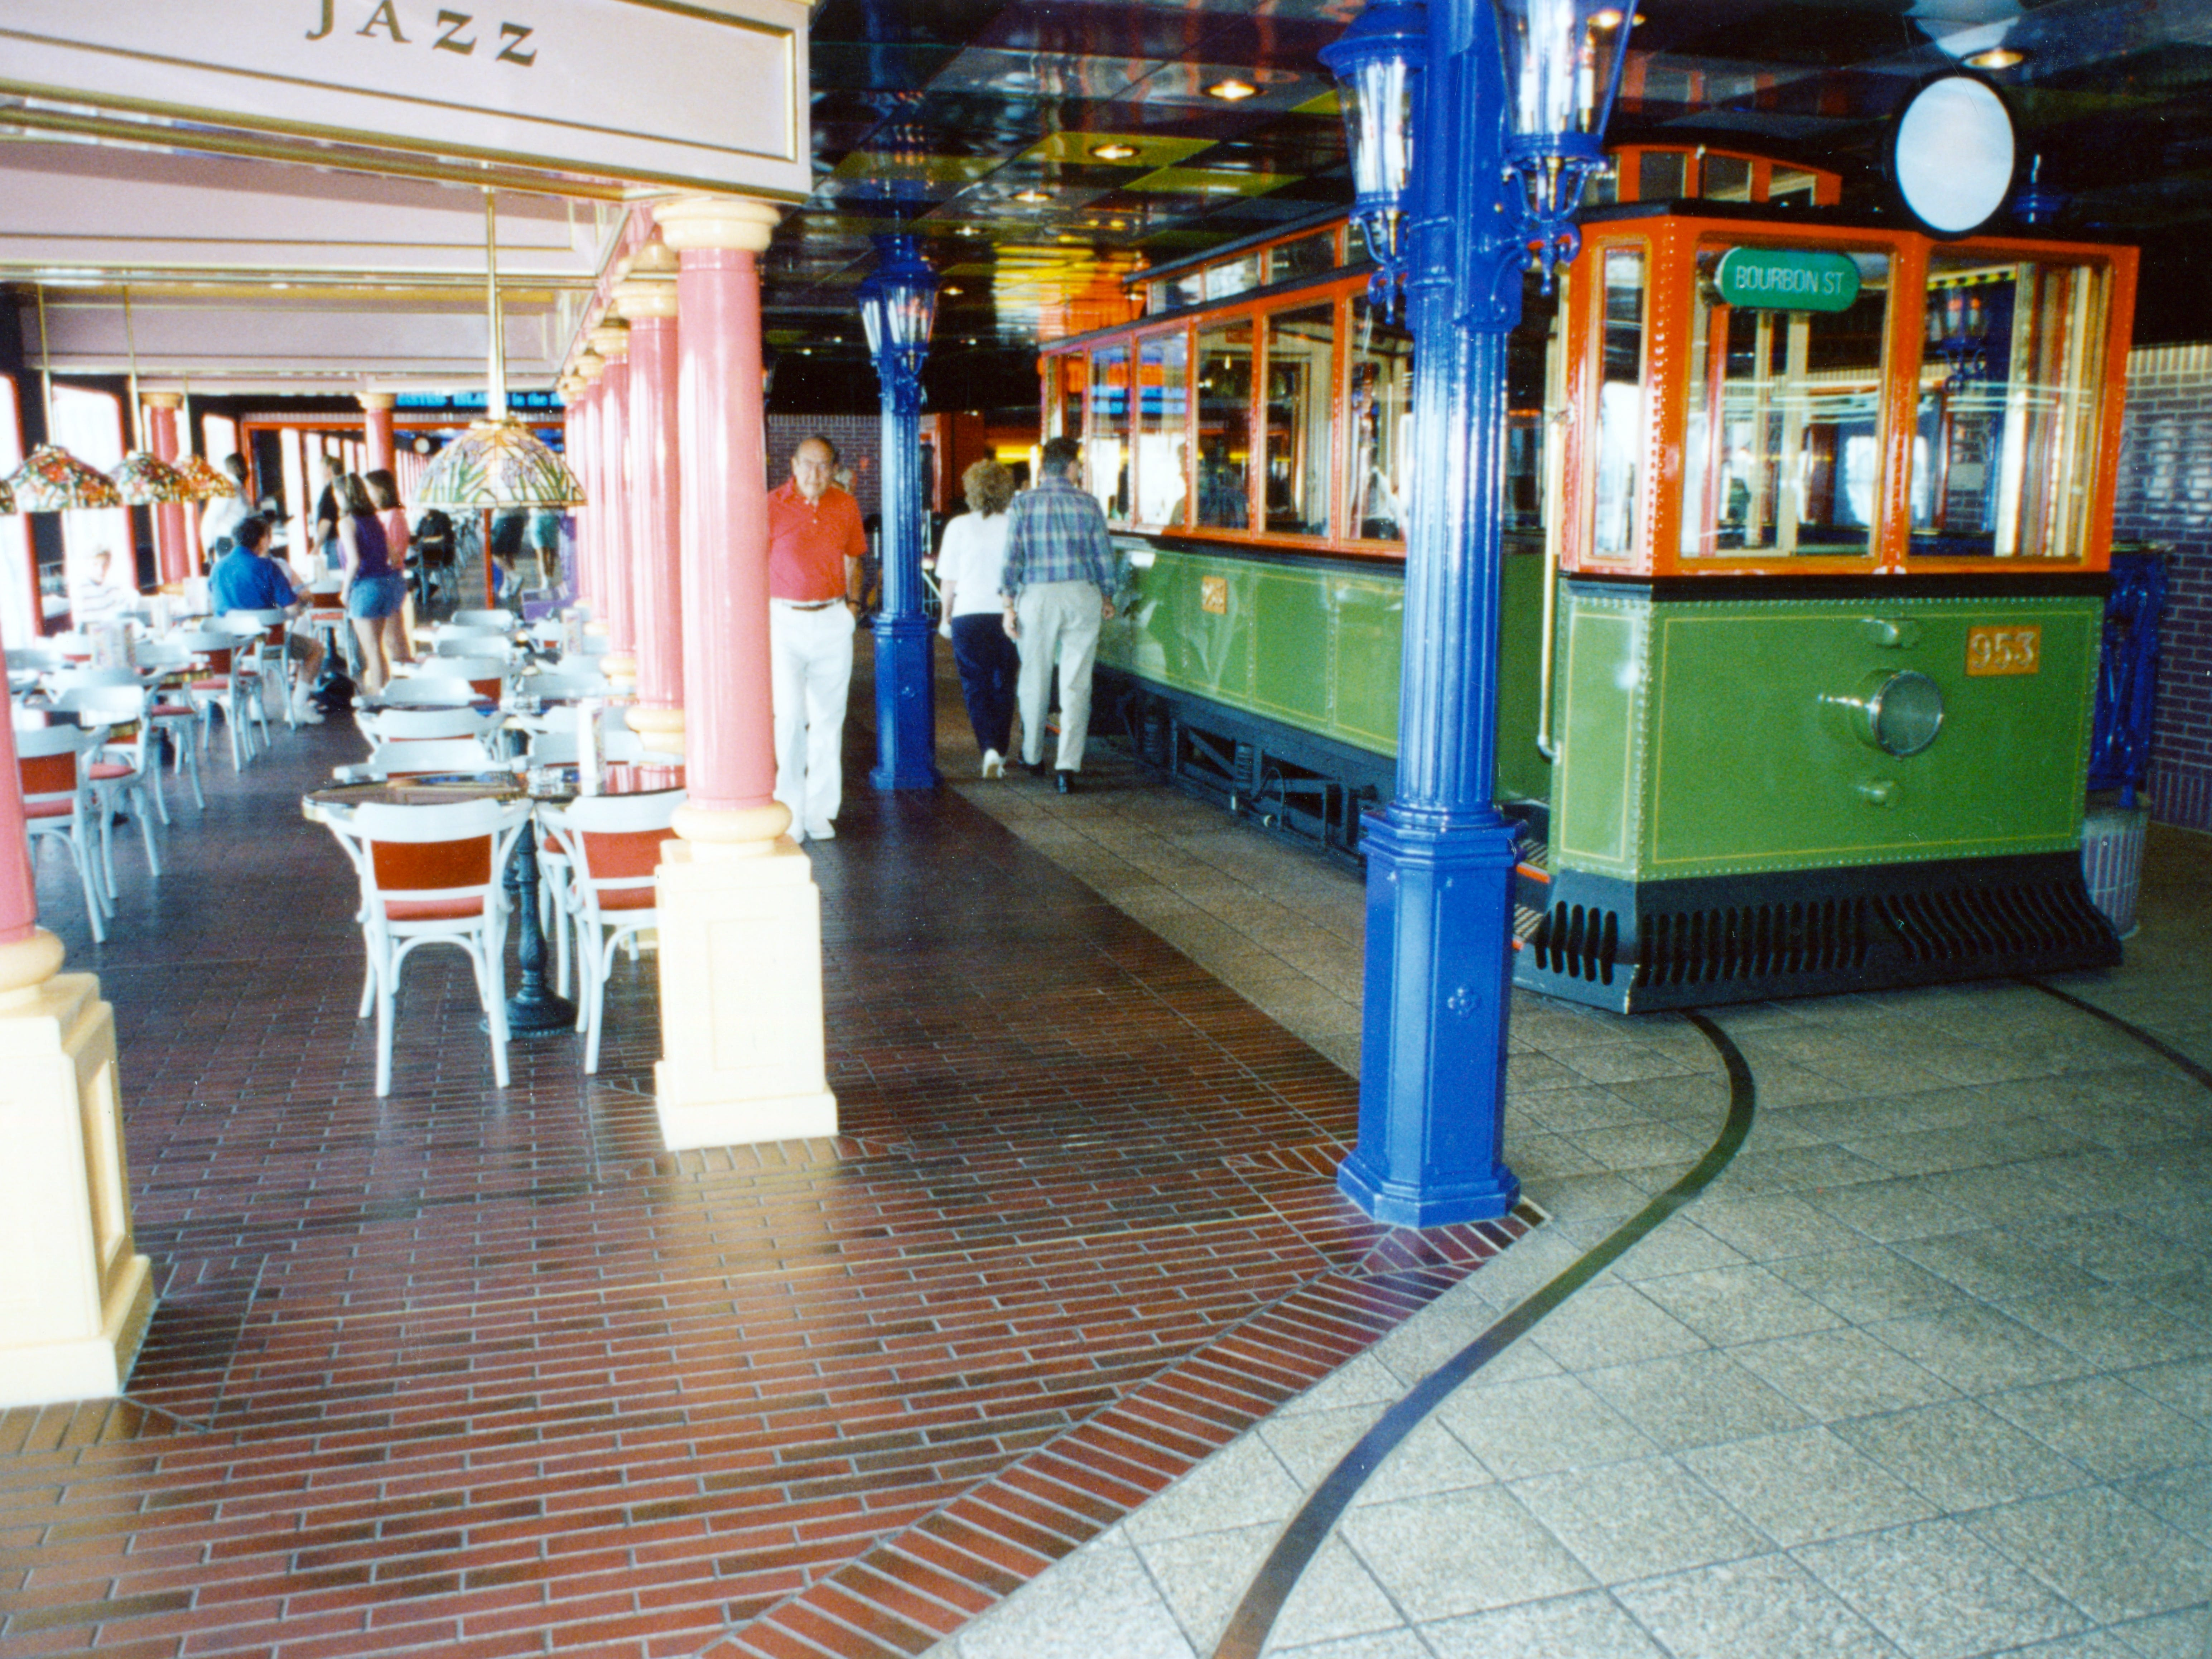 The Celebration was known for its wild, concept-themed original decor by Carnival's favored architect, Joseph Farcus. For instance, a genuine New Orleans street car was part of the Trolley Bar's decor, along with brick decking meant to emulate an open-air Bourbon Street cafe.